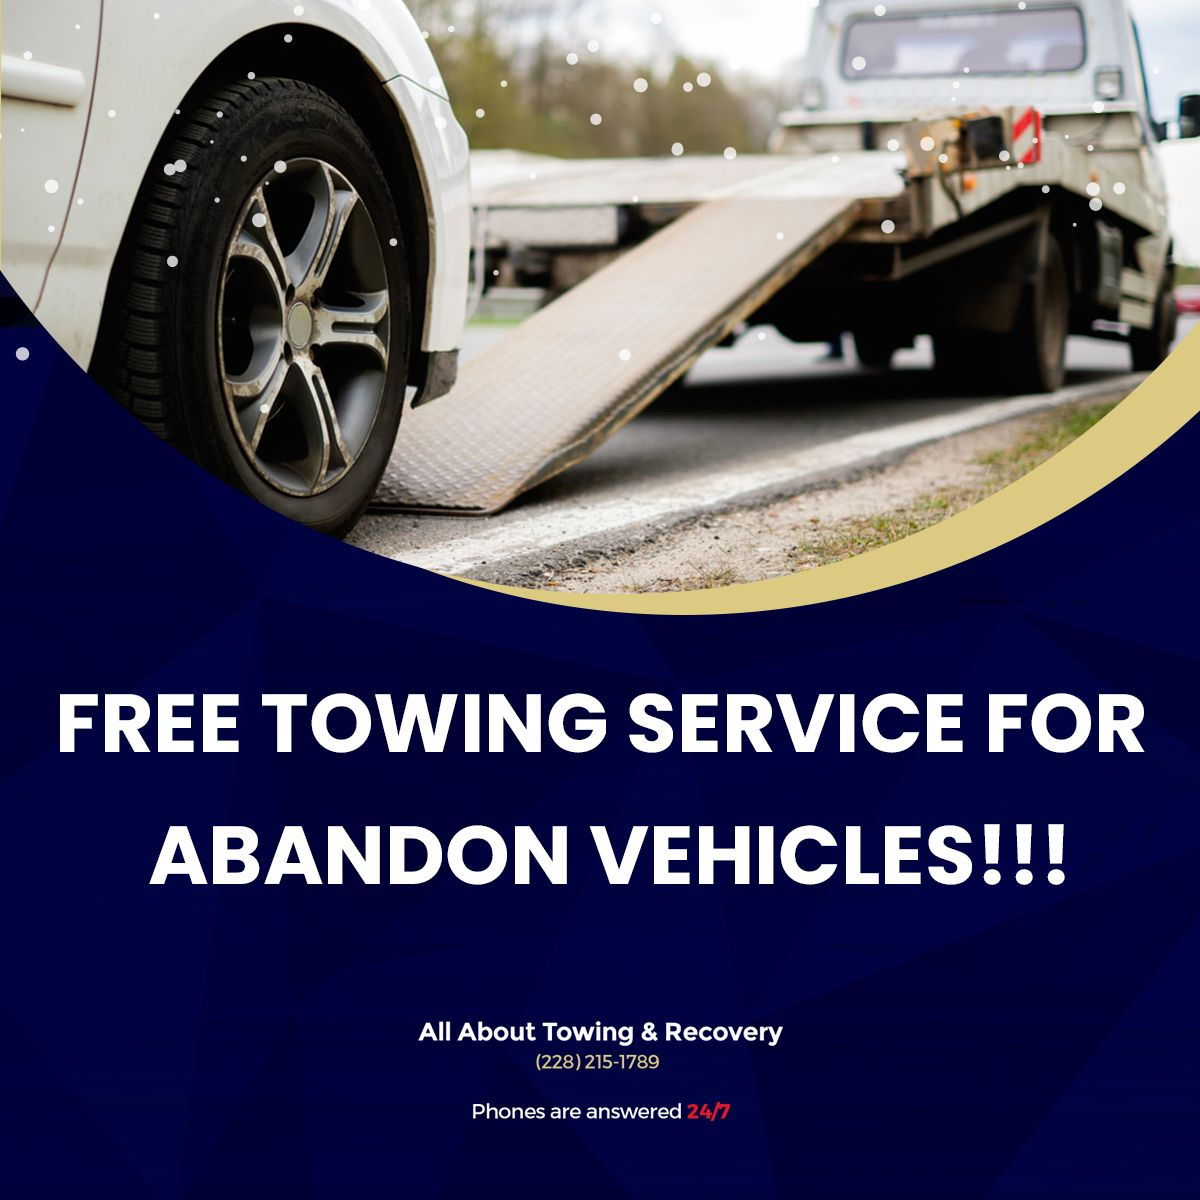 Free towing service for abandon vehicles towing service